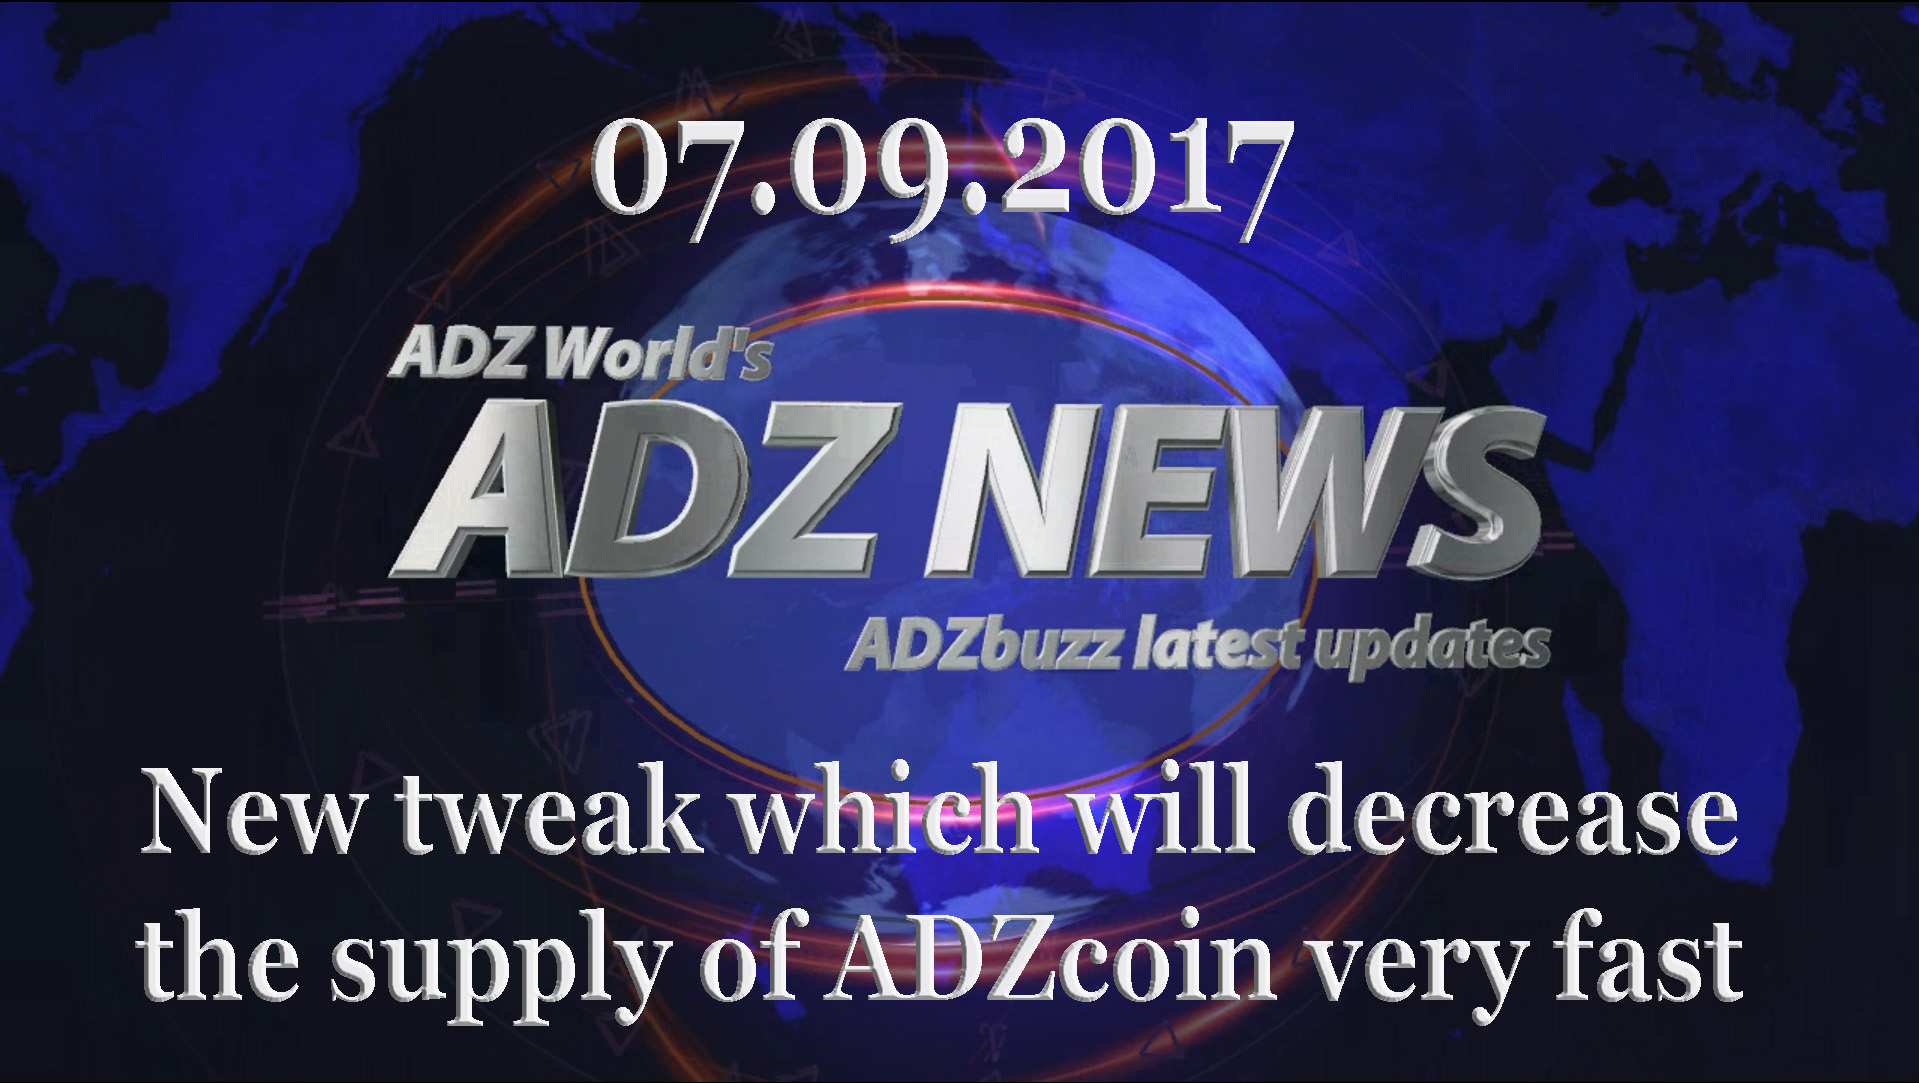 ADZ News – 07.09.2017 – New Tweak Which Will Decrease The Supply Of ADZcoin Very Fast